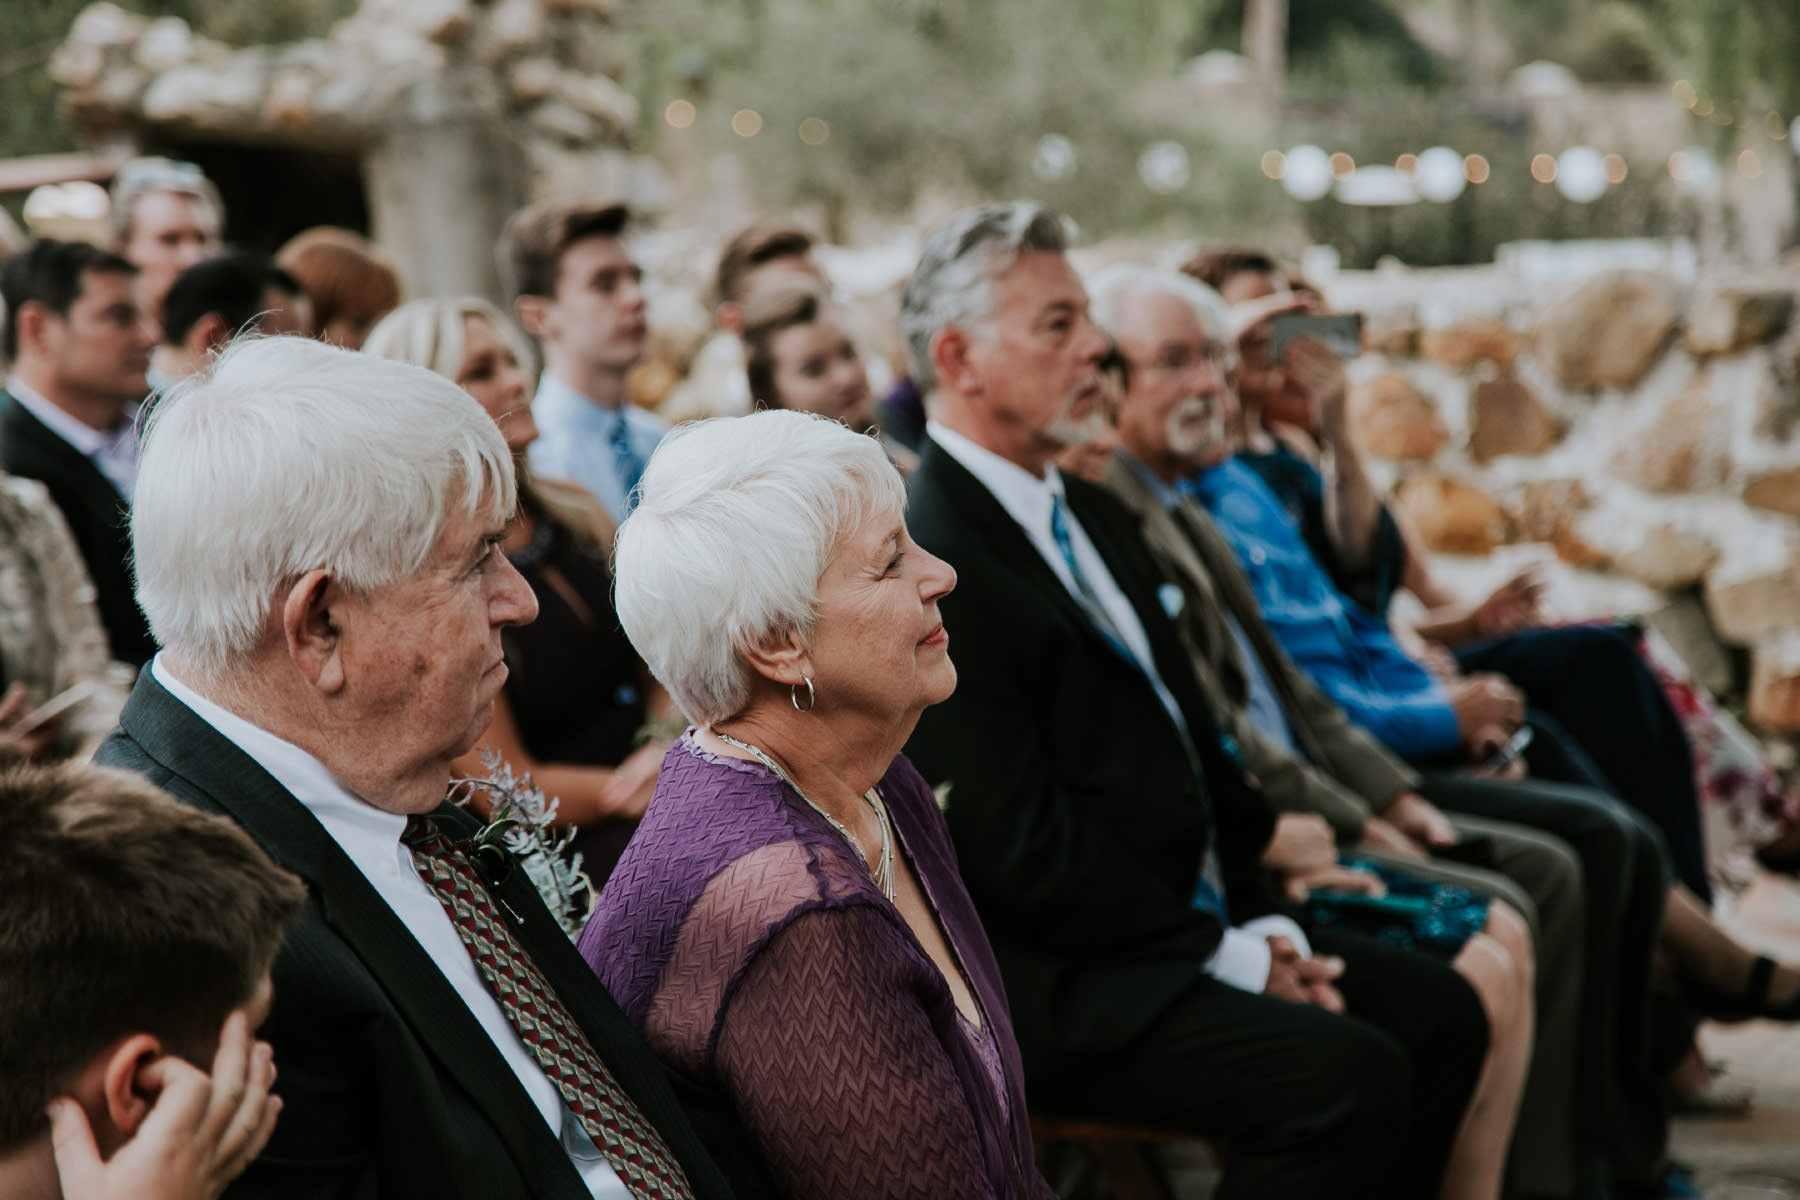 Family witnessing ceremony at Leo Carrillo Ranch